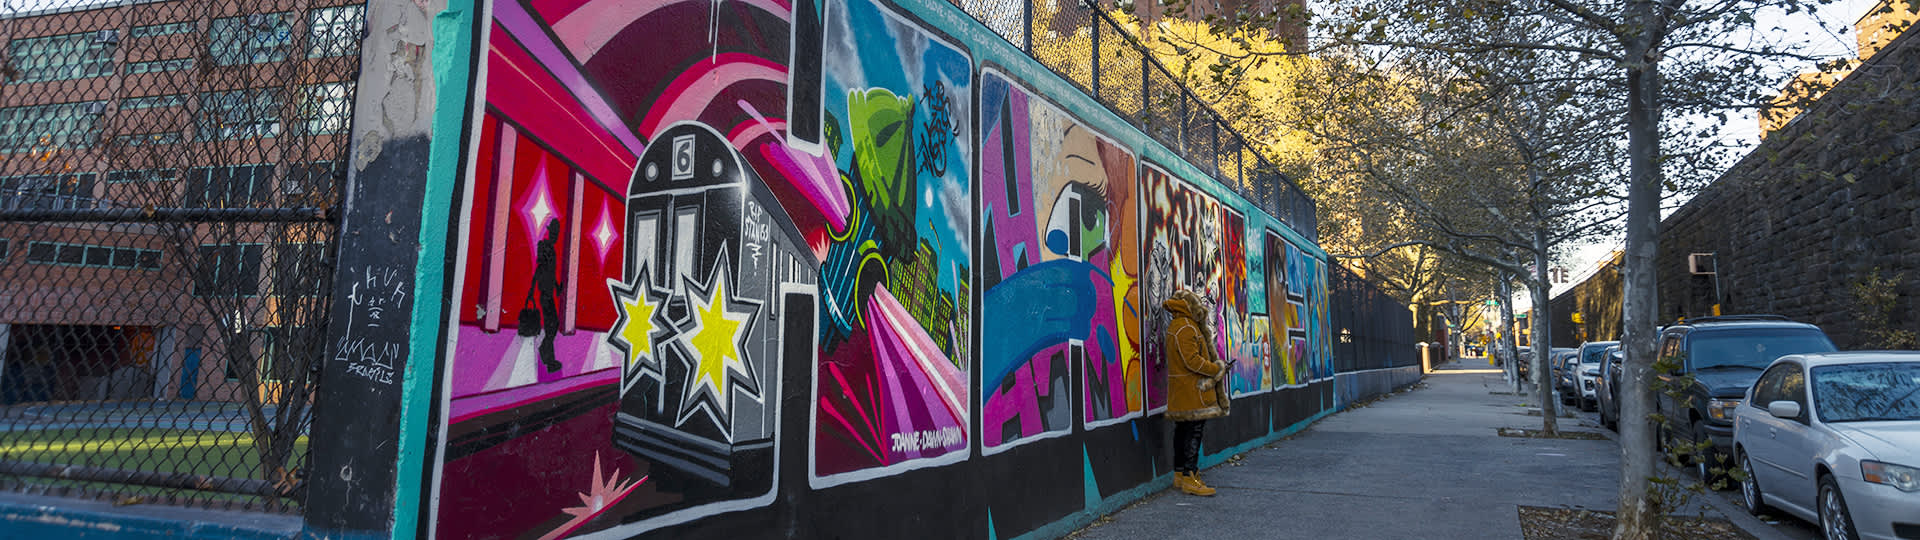 East Harlem, Graffiti Hall of Fame